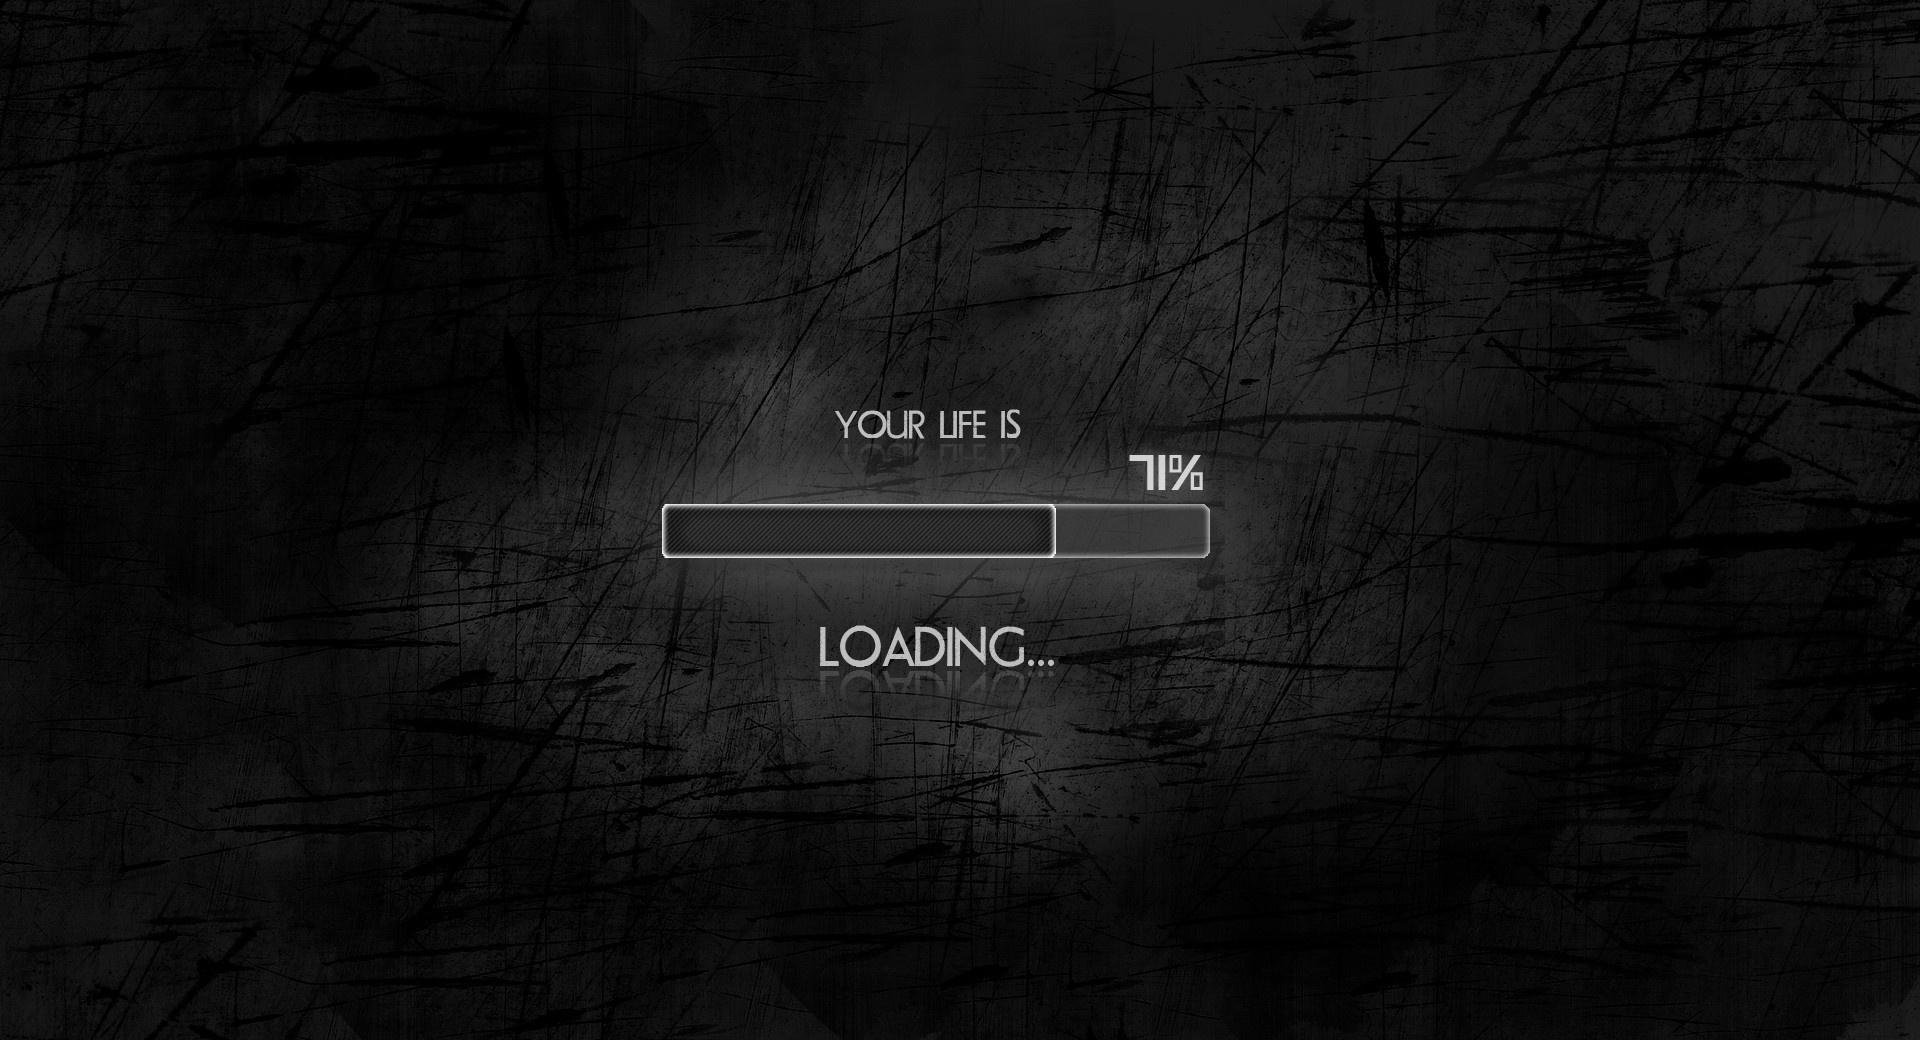 Your Life is Loading wallpapers HD quality